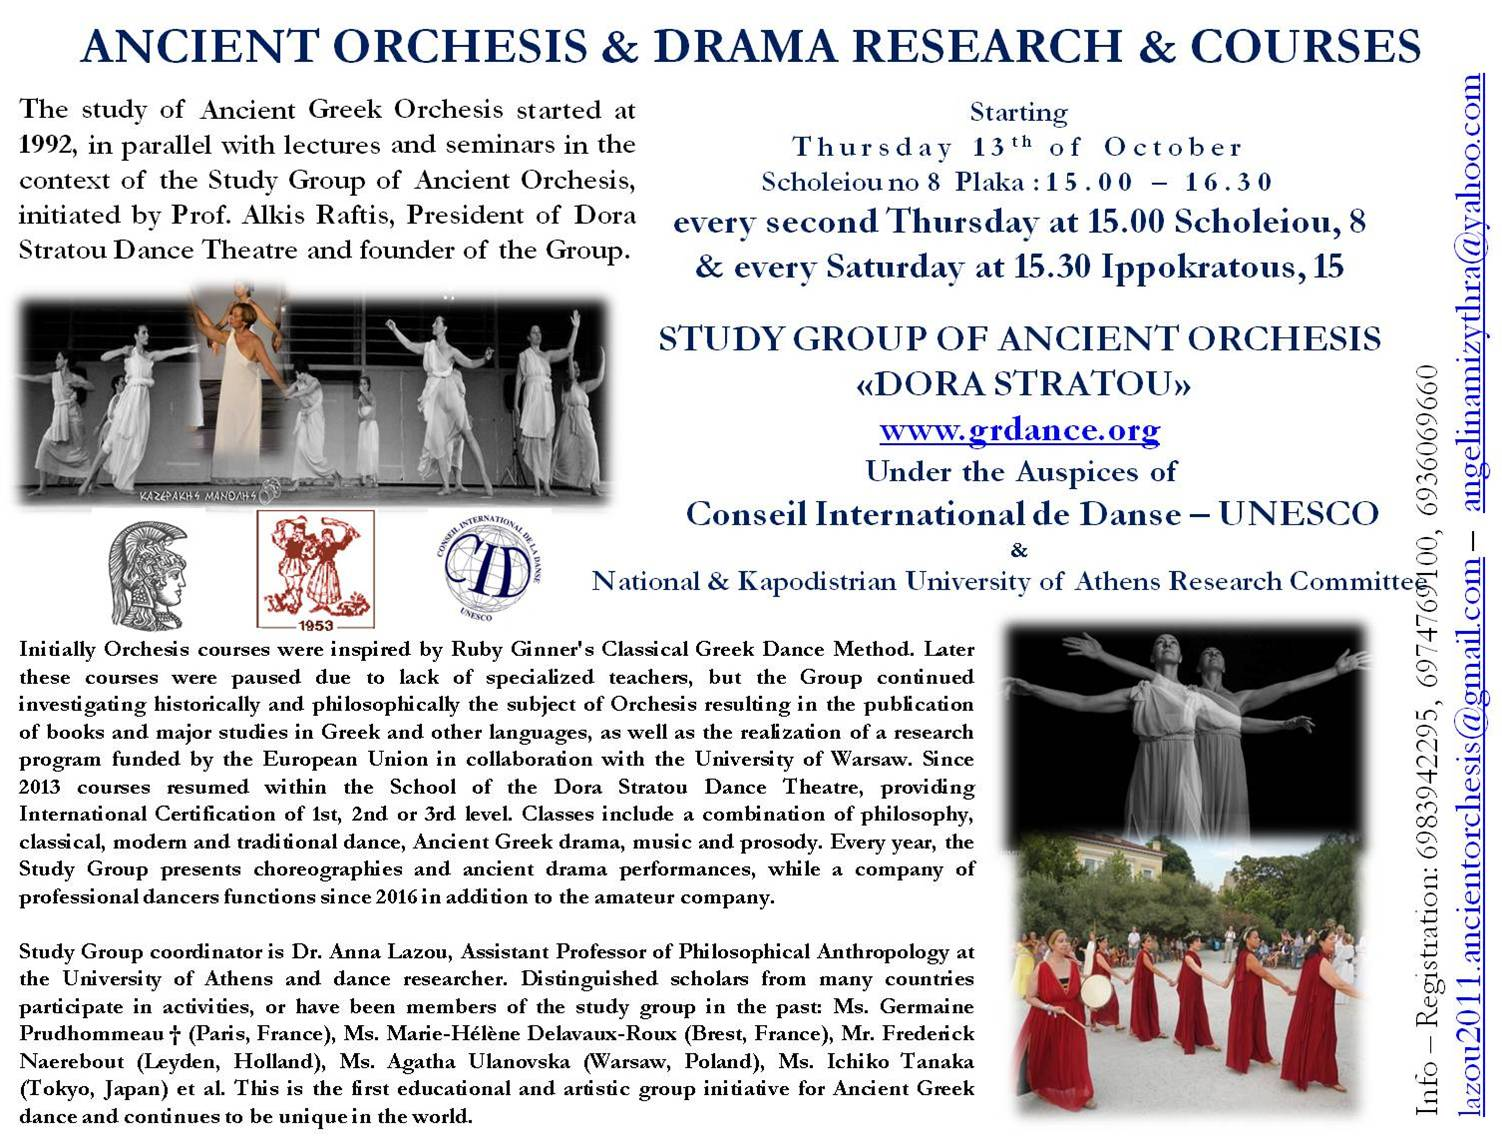 ORCHESIS COURSES